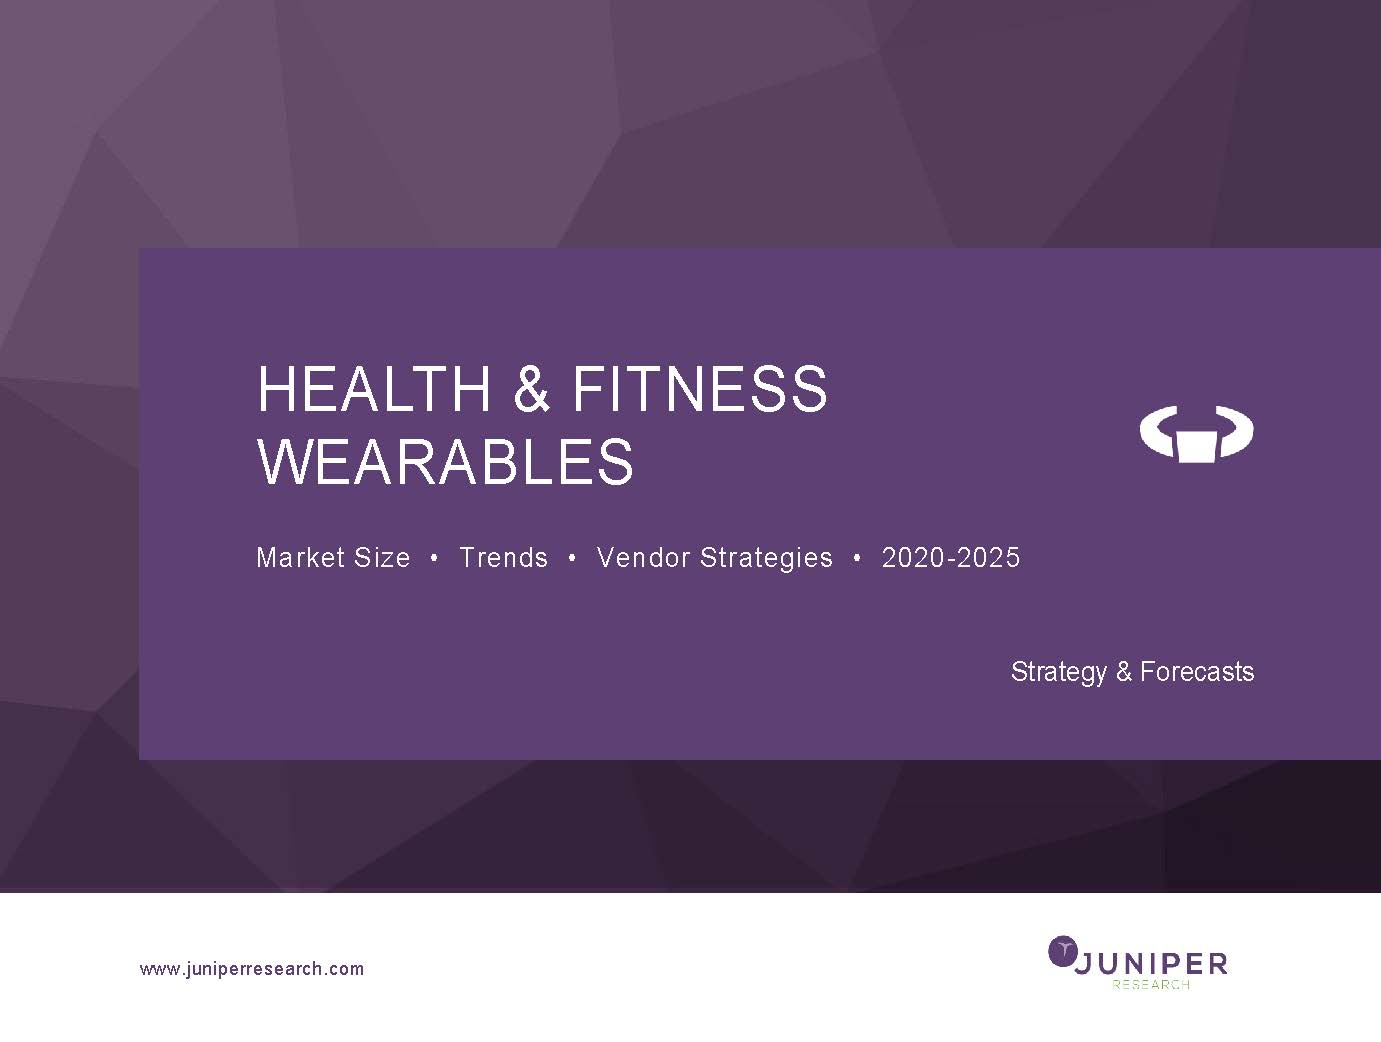 Health & Fitness Wearables: Market Size, Trends & Vendor Strategies 2020-2025